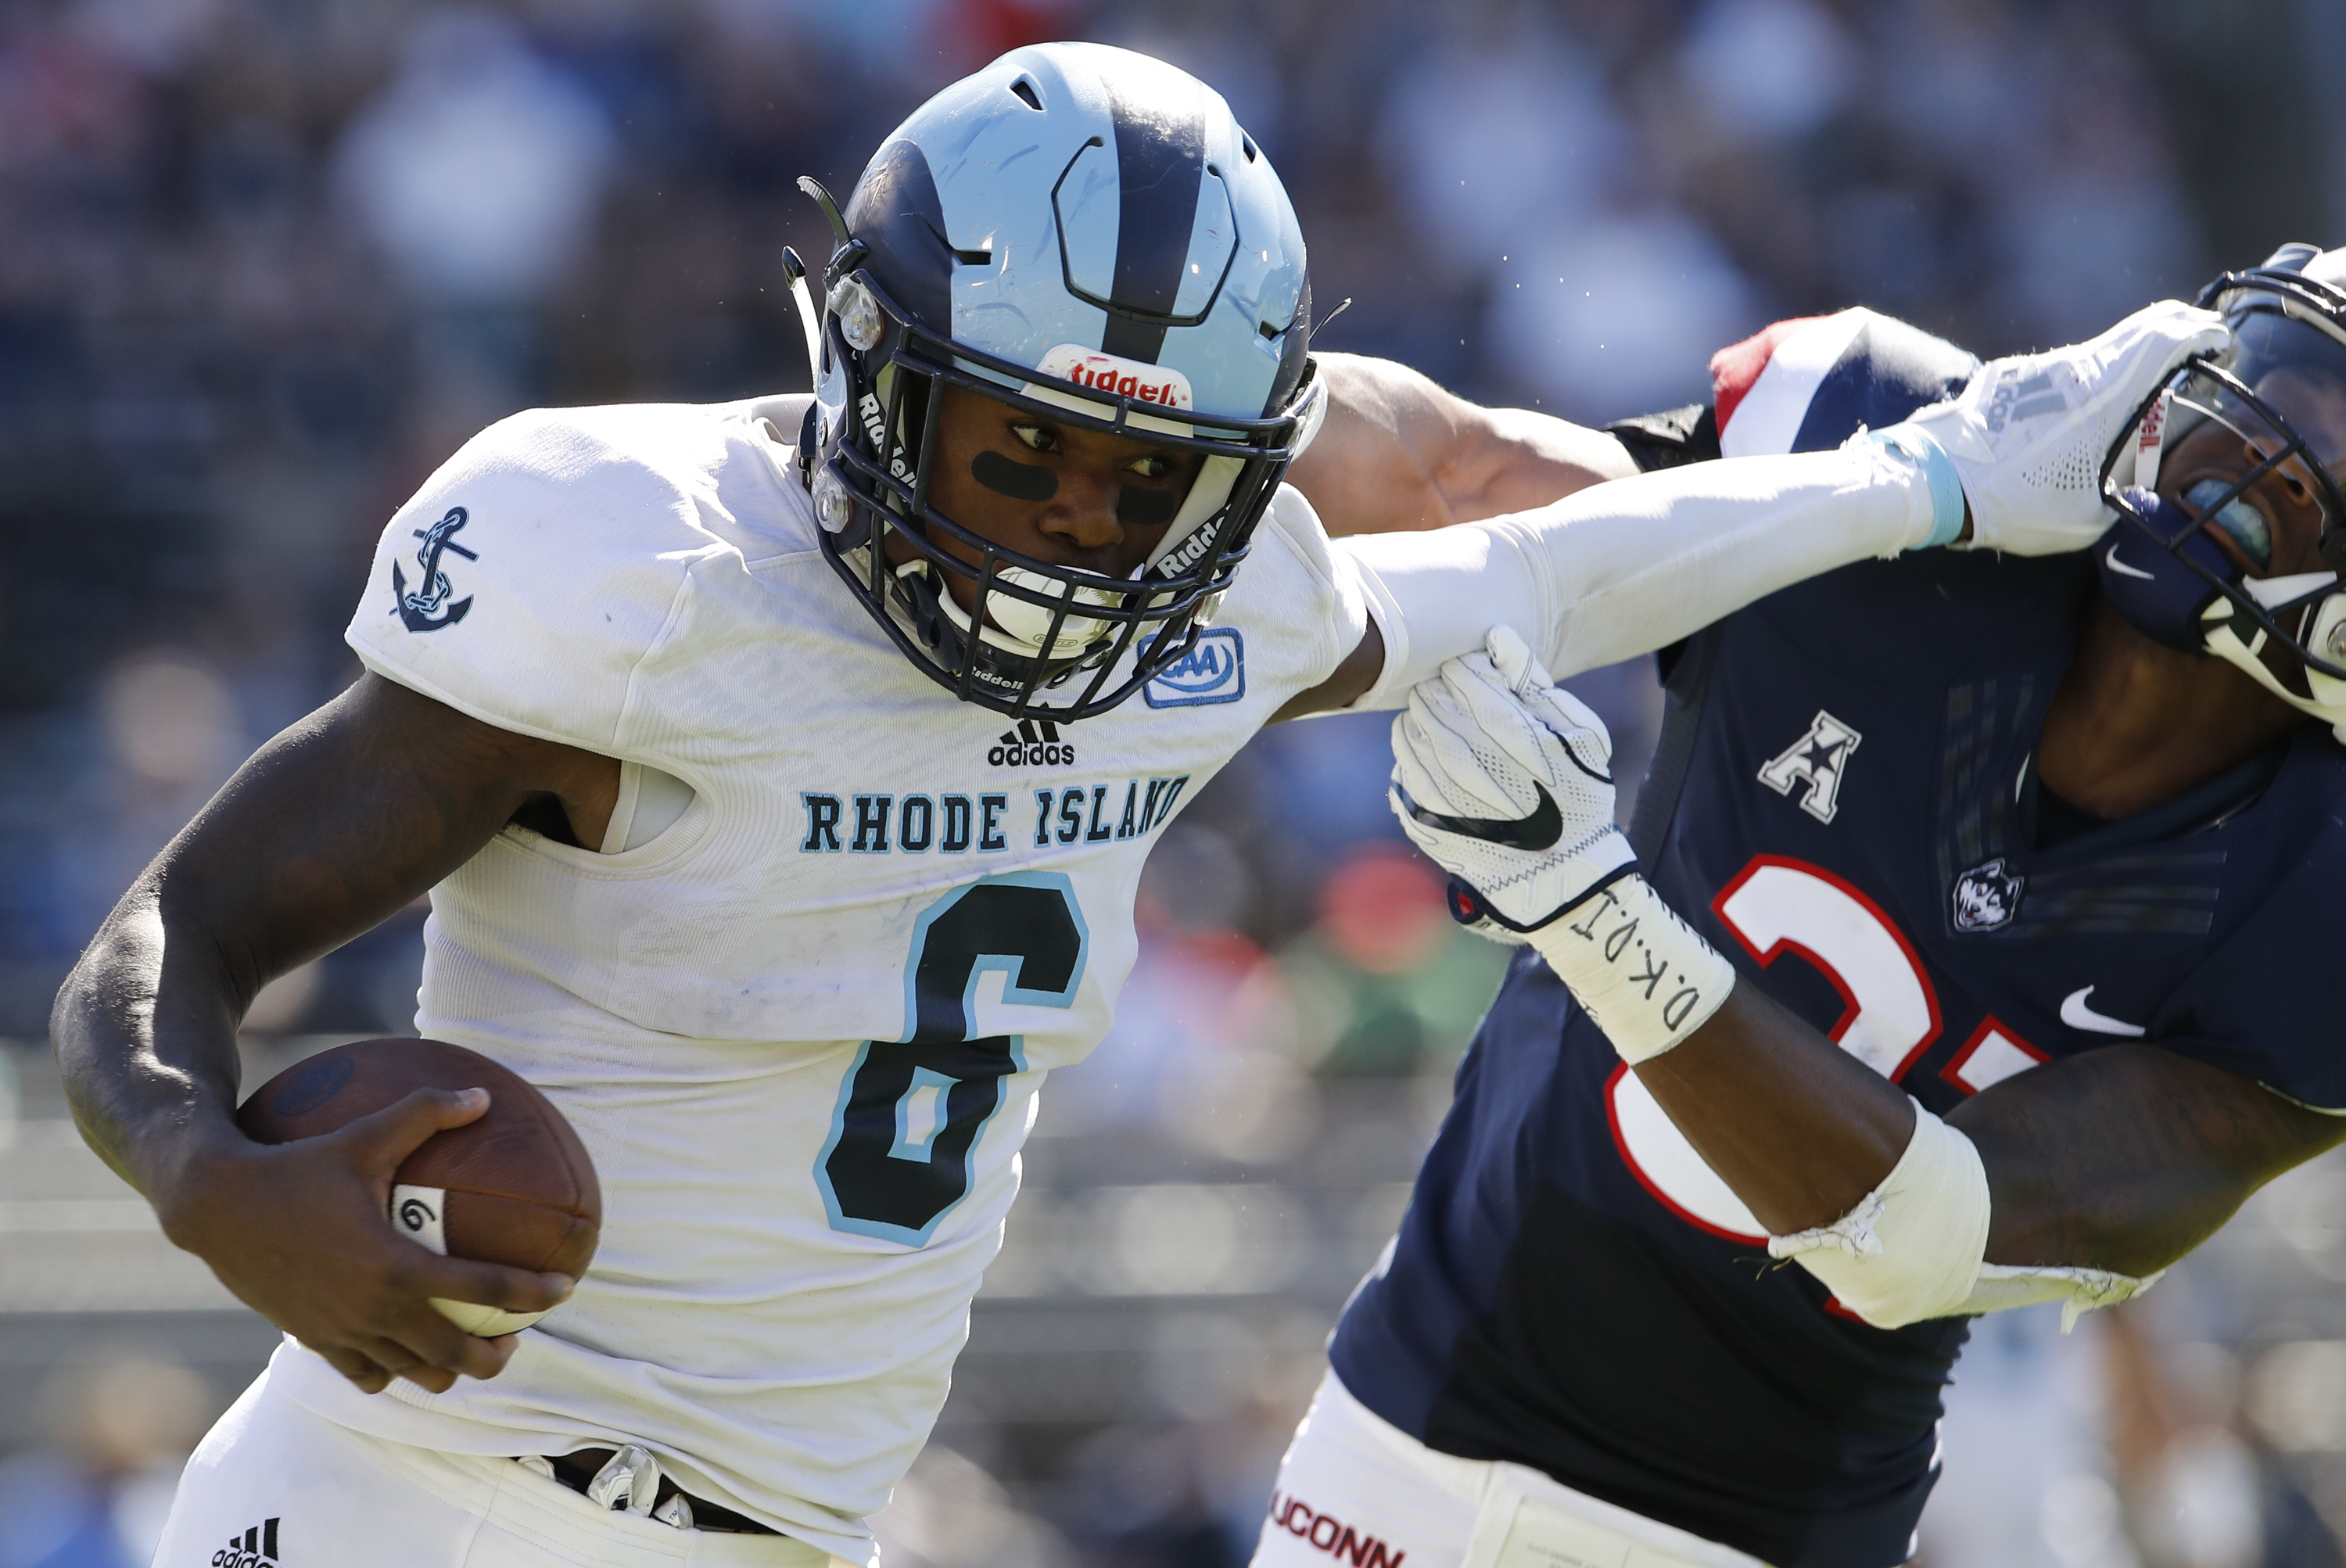 Small State With a Large Talent: Meet Rhode Island WR Aaron Parker ...